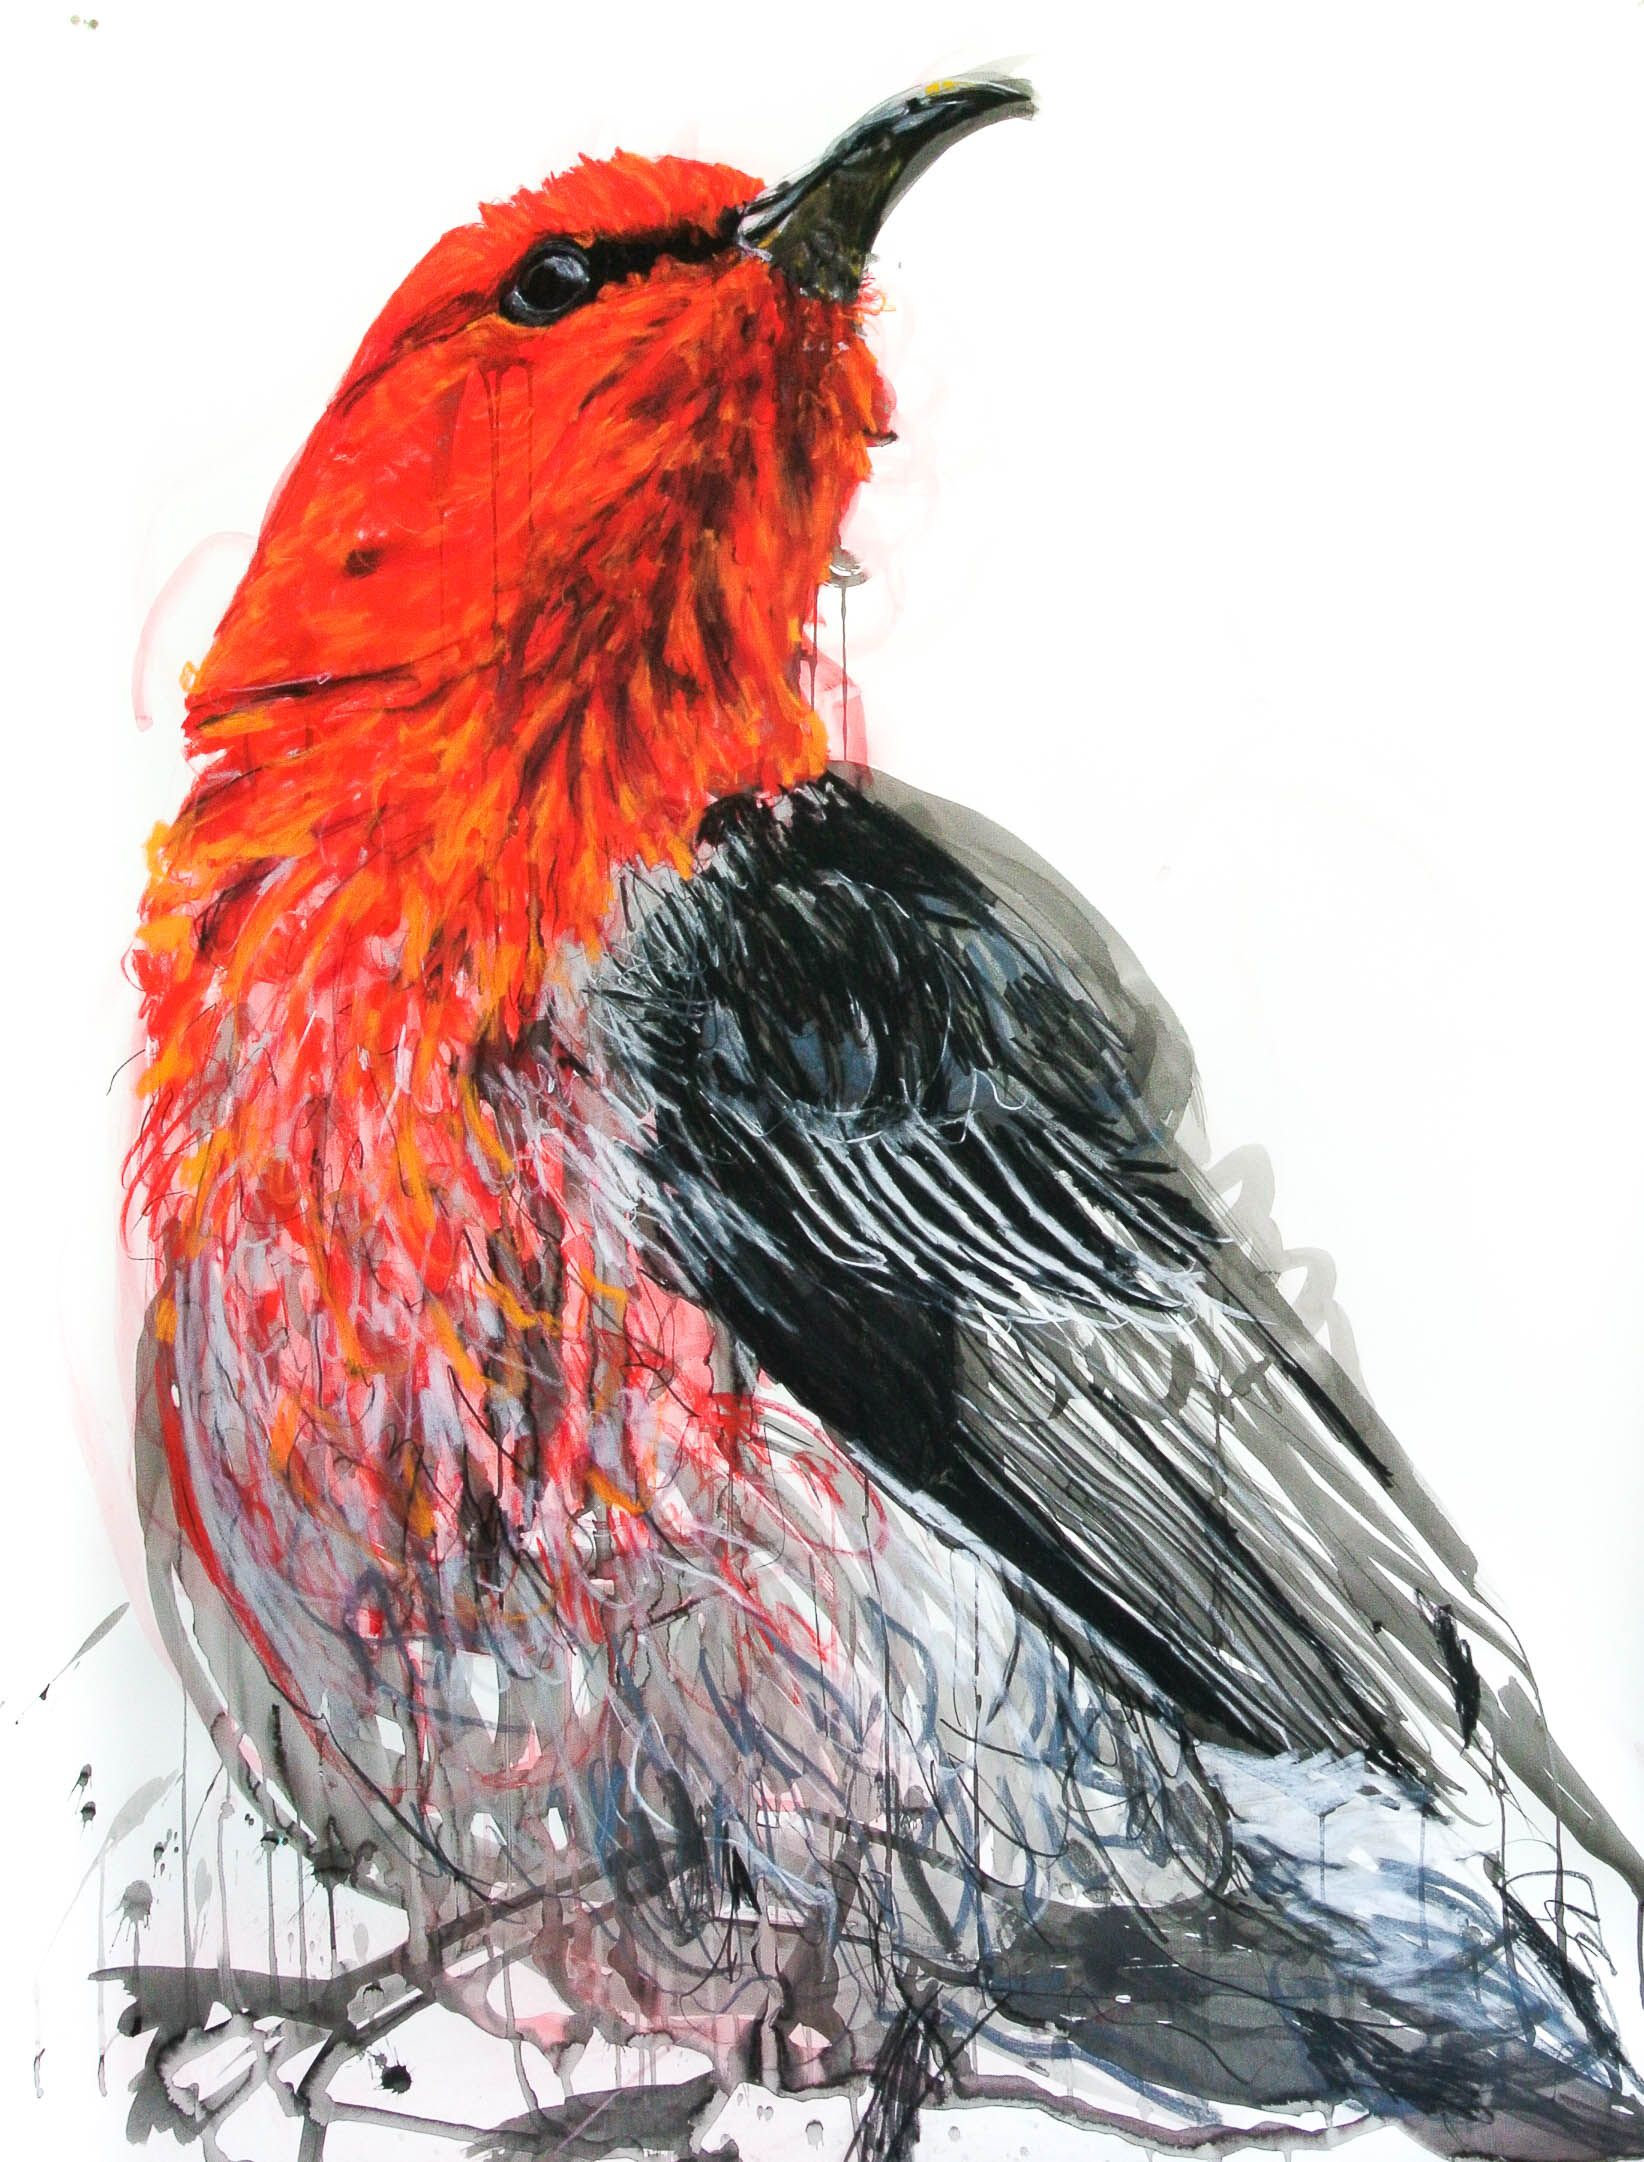 Meaghan Potter, Scarlet Honey Eater, 2017, Watercolour, Ink and Conte Charcoal on Arches 300gsm Watercolour paper, 140 x 150 cm, .M Contemporary, Art Gallery, 37 Ocean St, Woollahra, NSW, enquire at gallery@mcontemp.com